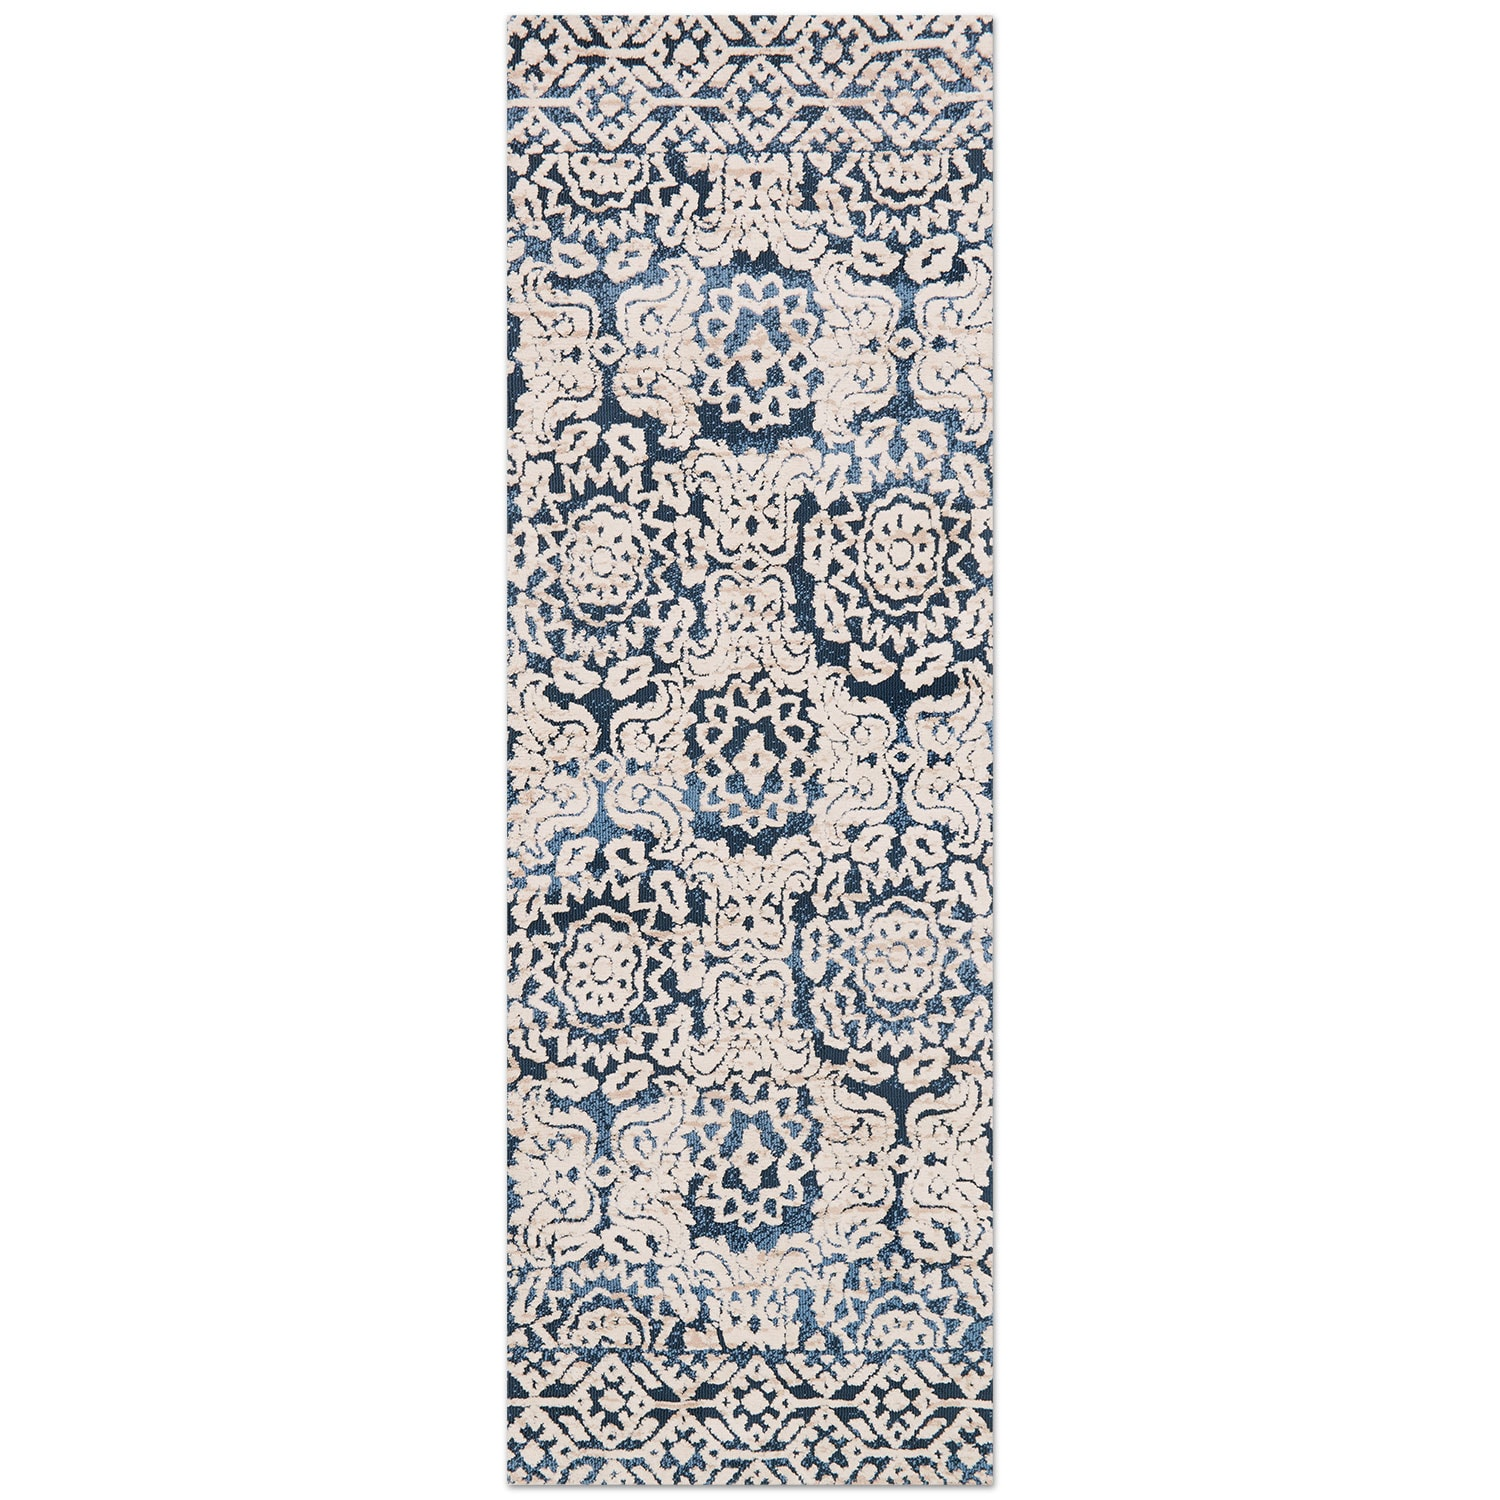 Rugs - Lotus 3' x 8' Rug - Blue and Antique Ivory